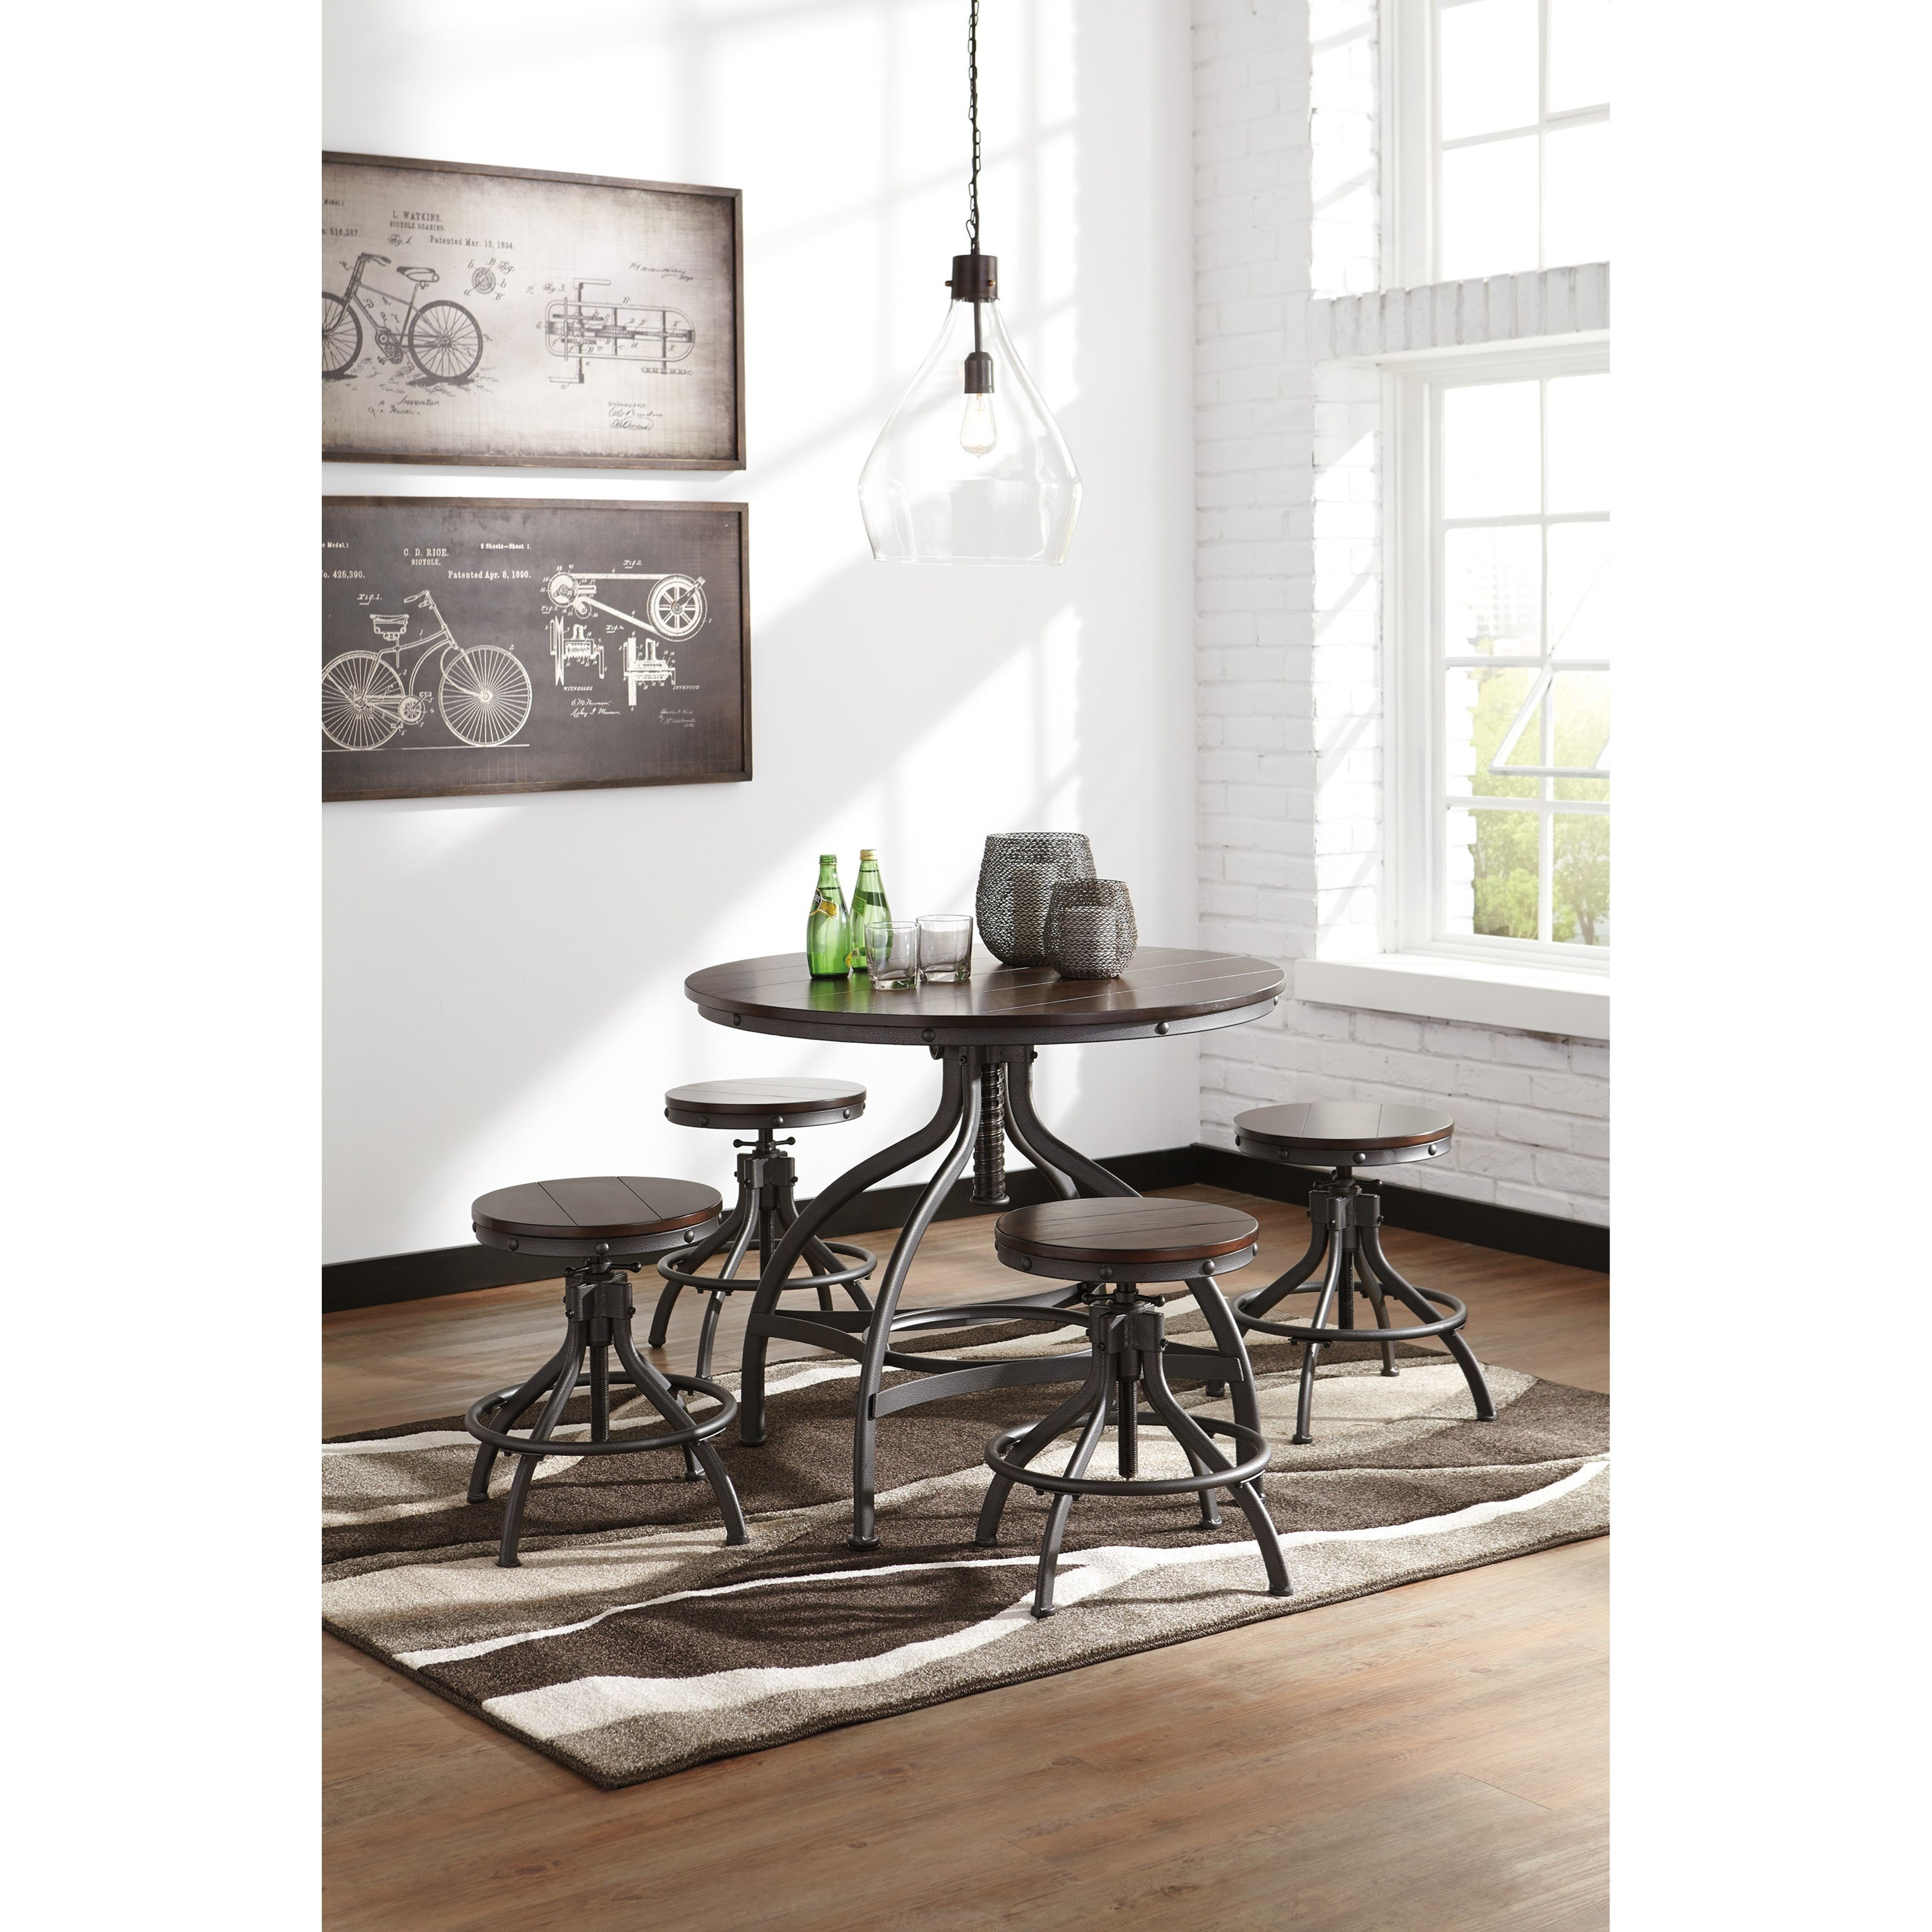 Ashley S Nest Decorating A Dining Room: Signature Design By Ashley Odium Adjustable 5-Piece Dining